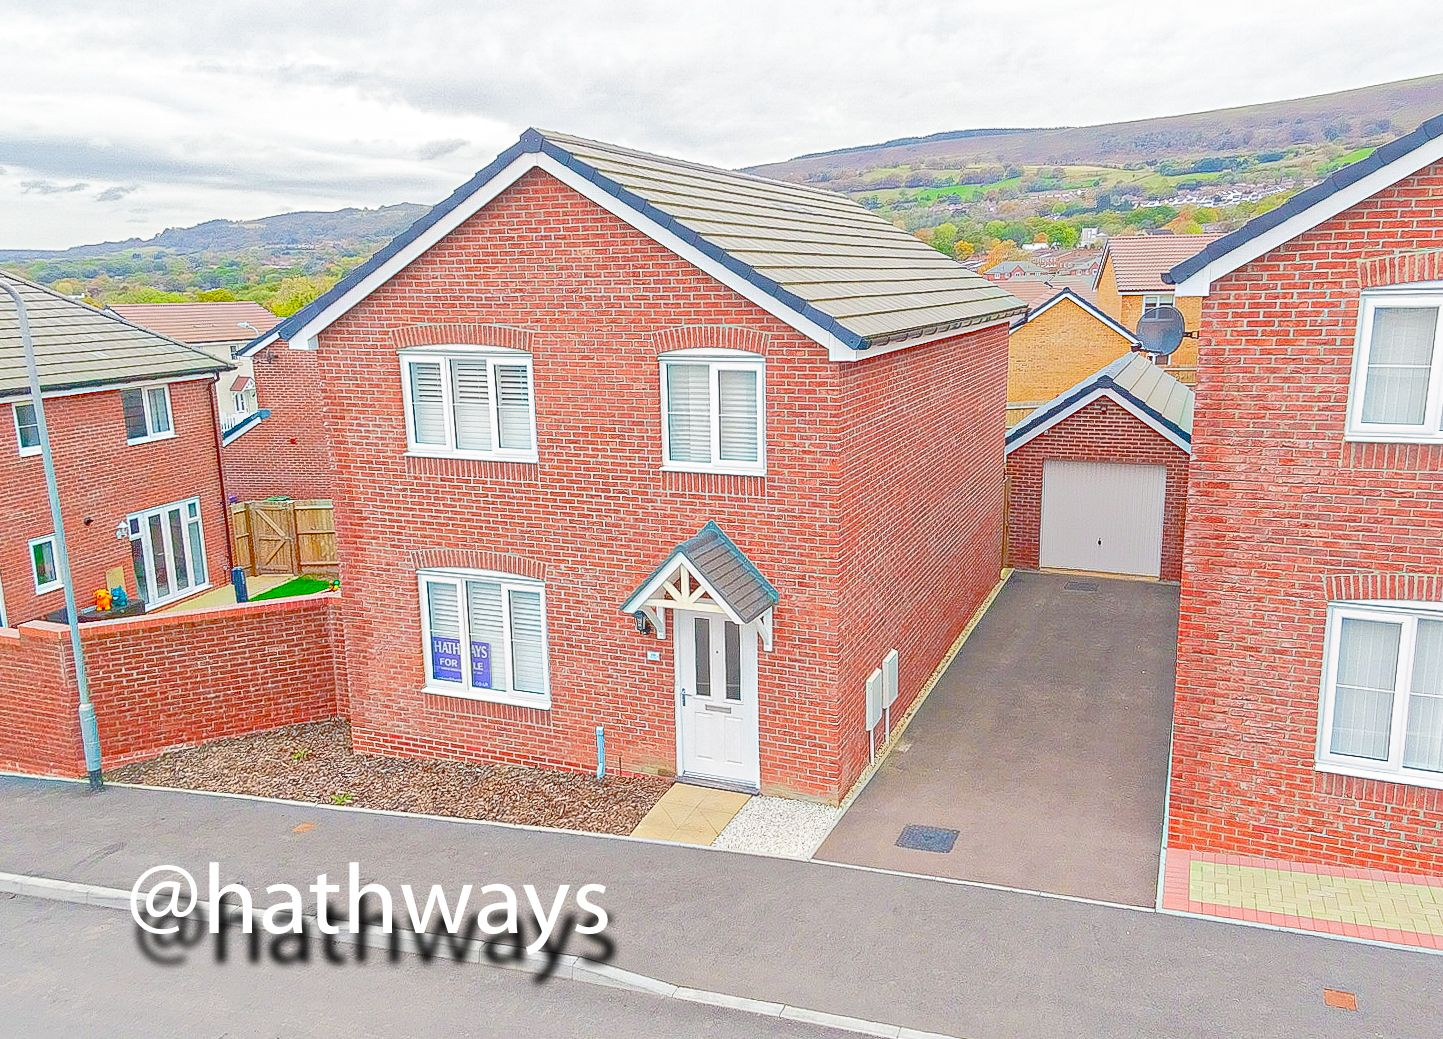 4 bed house for sale in Cwrt Celyn  - Property Image 1